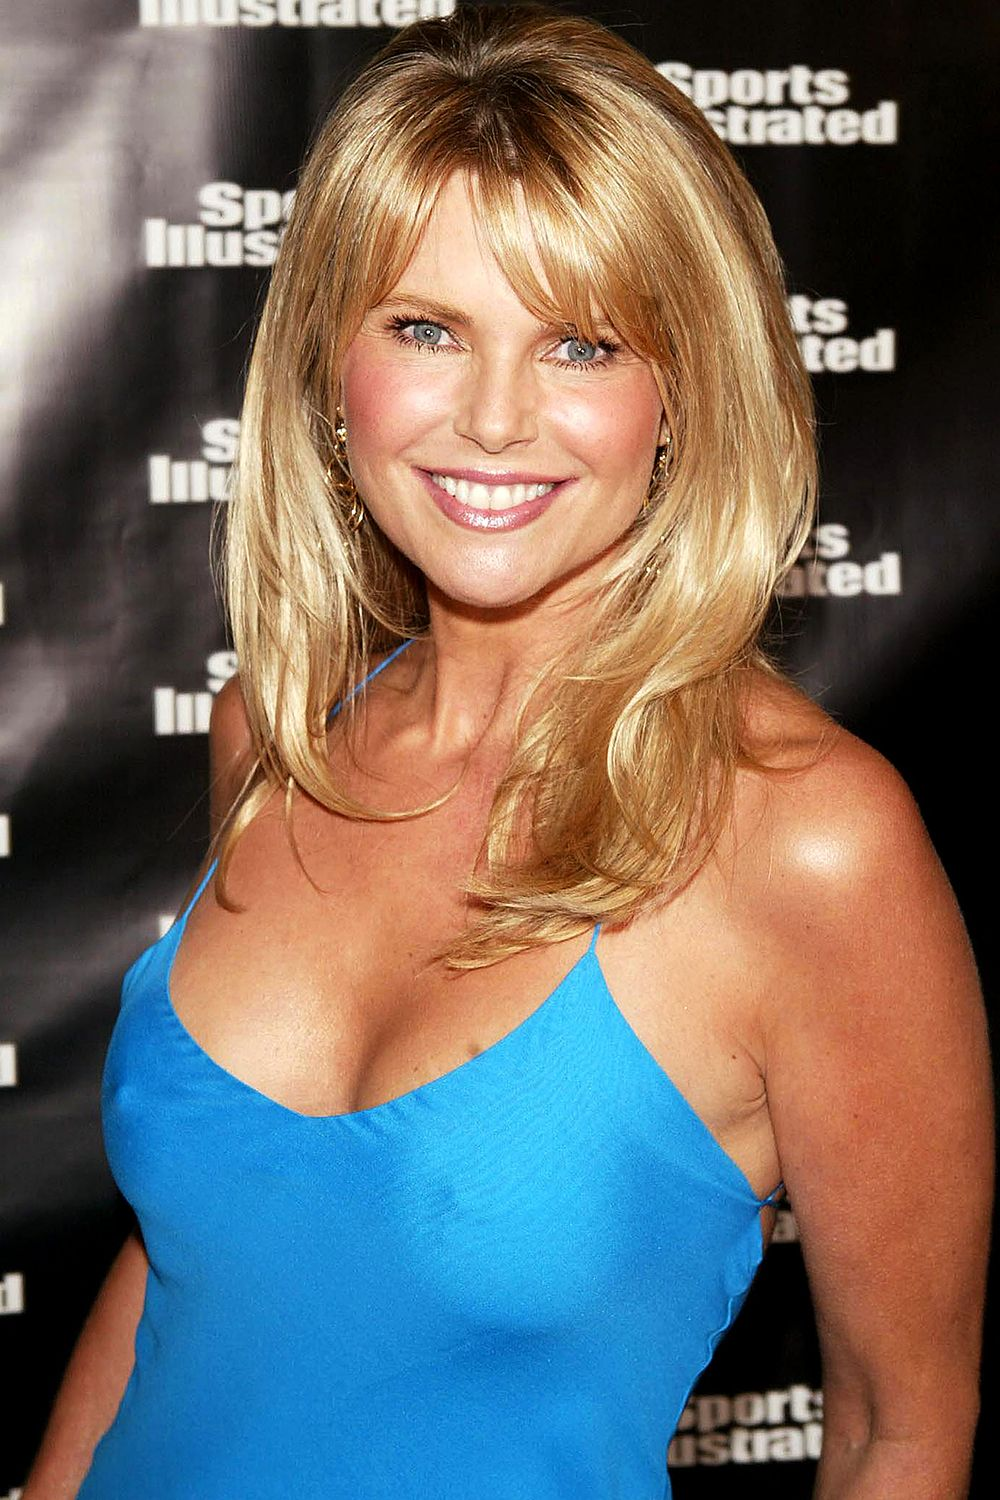 Pics Christie Brinkley nudes (66 foto and video), Pussy, Cleavage, Instagram, see through 2015